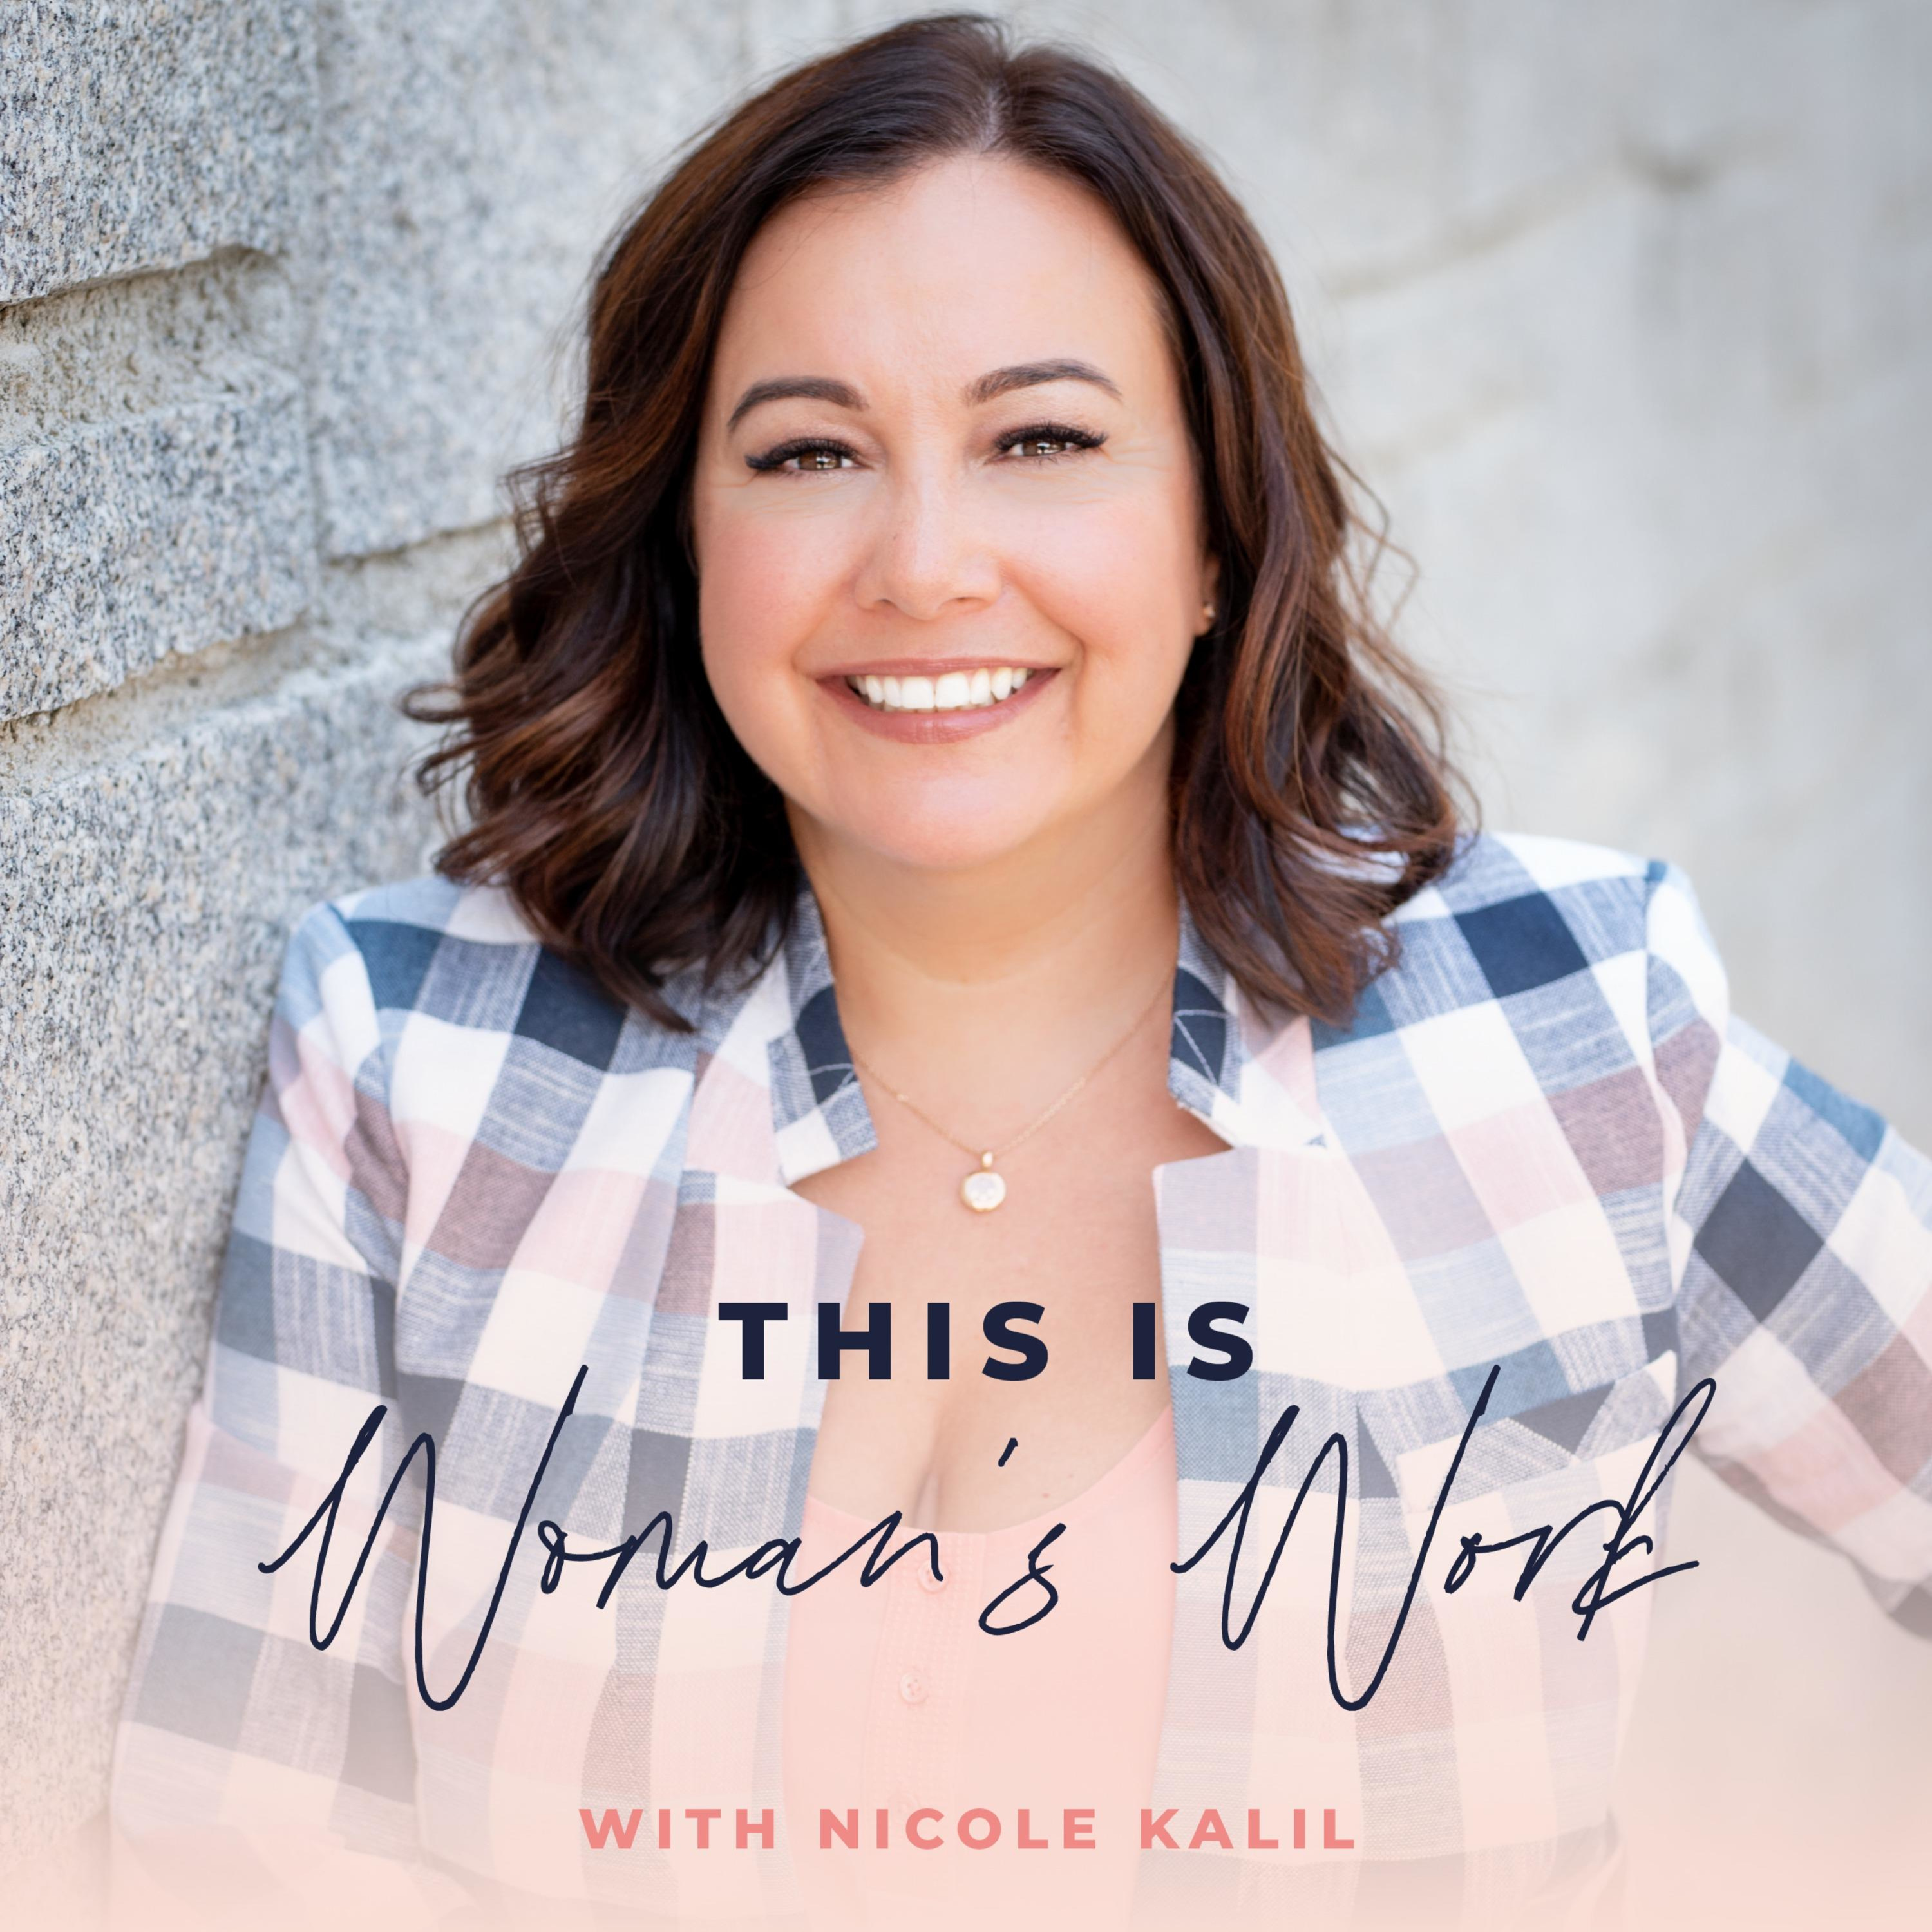 This Is Woman's Work with Nicole Kalil